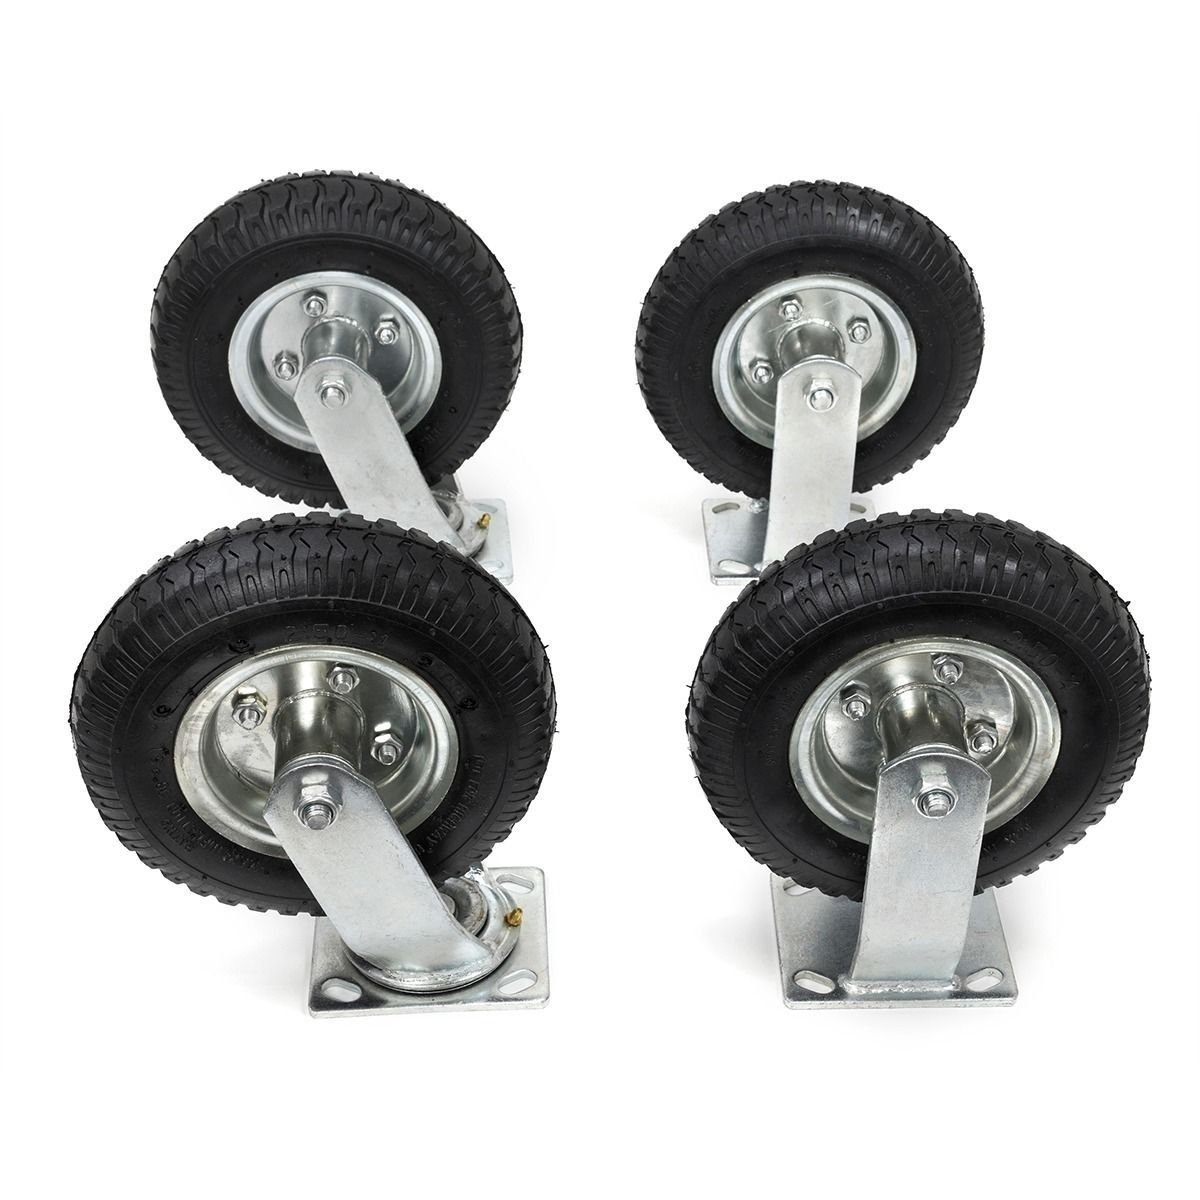 9TRADING 4Pcs 8'' Pneumatic Air Tire Wheel 2 Rigid and 2 Swivel HD Farm Cart Caster Large, Free Tax, Delivered within 10 days by 9TRADING